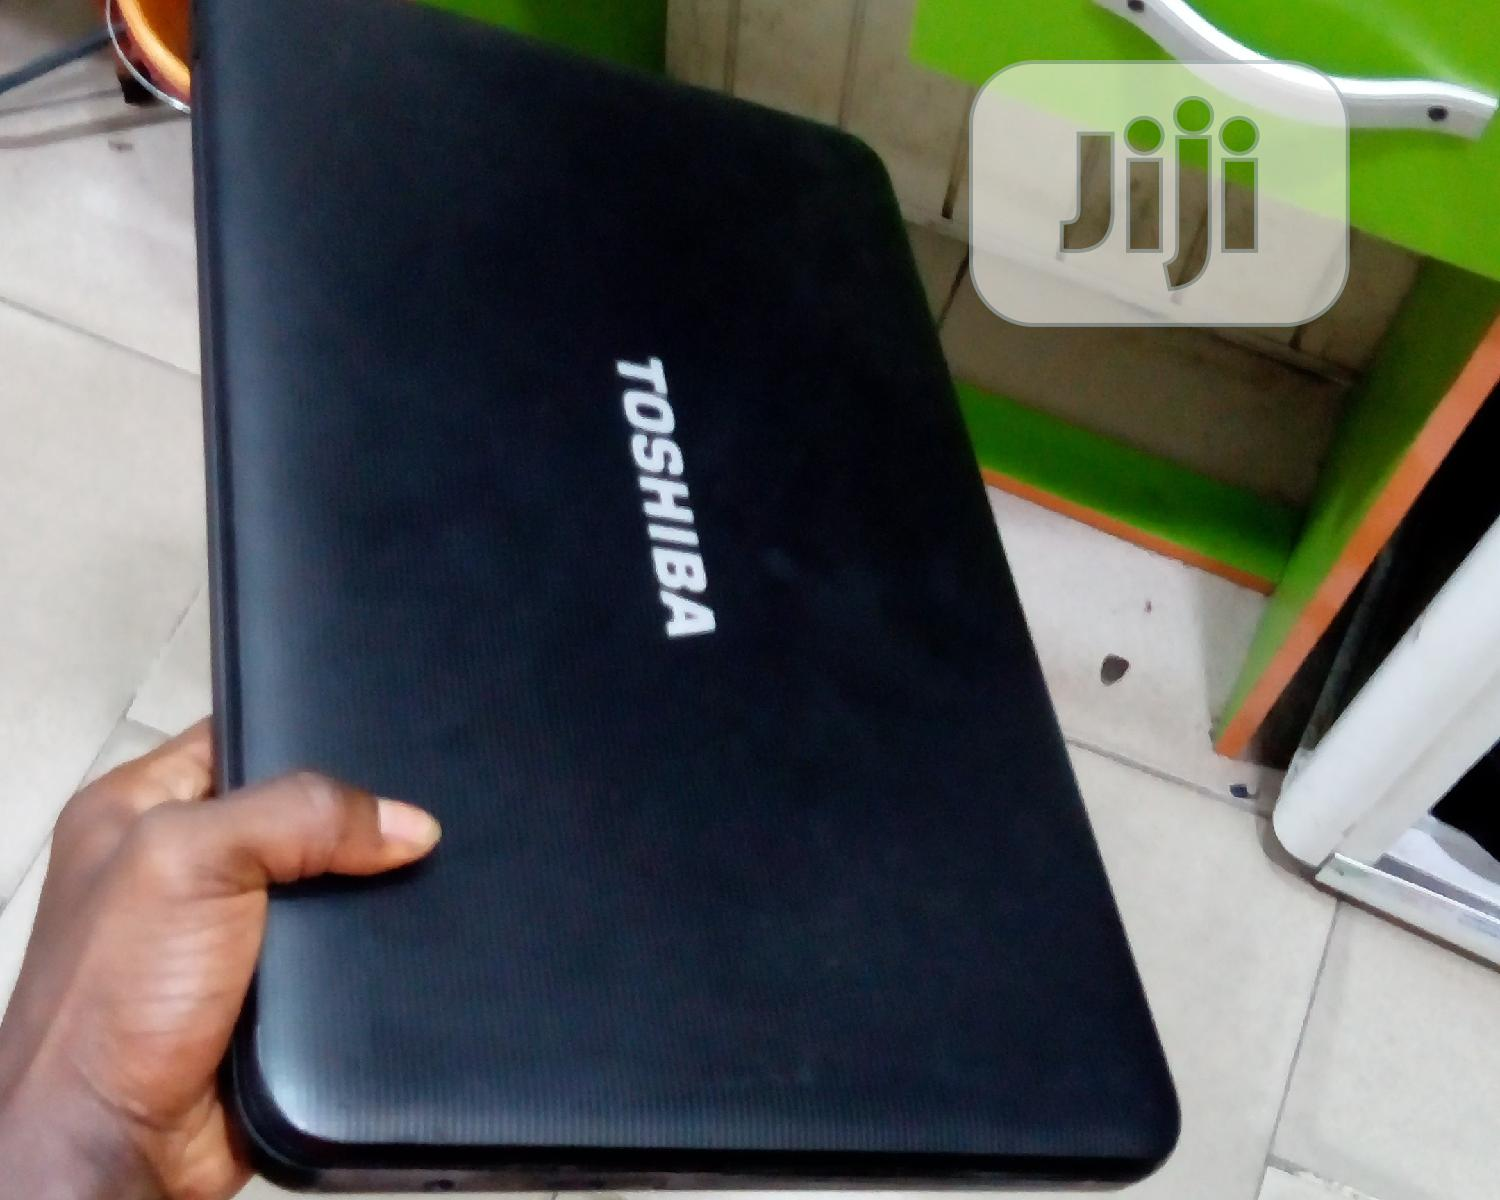 Archive: Laptop Toshiba Satellite C855 4GB Intel Core i3 HDD 320GB